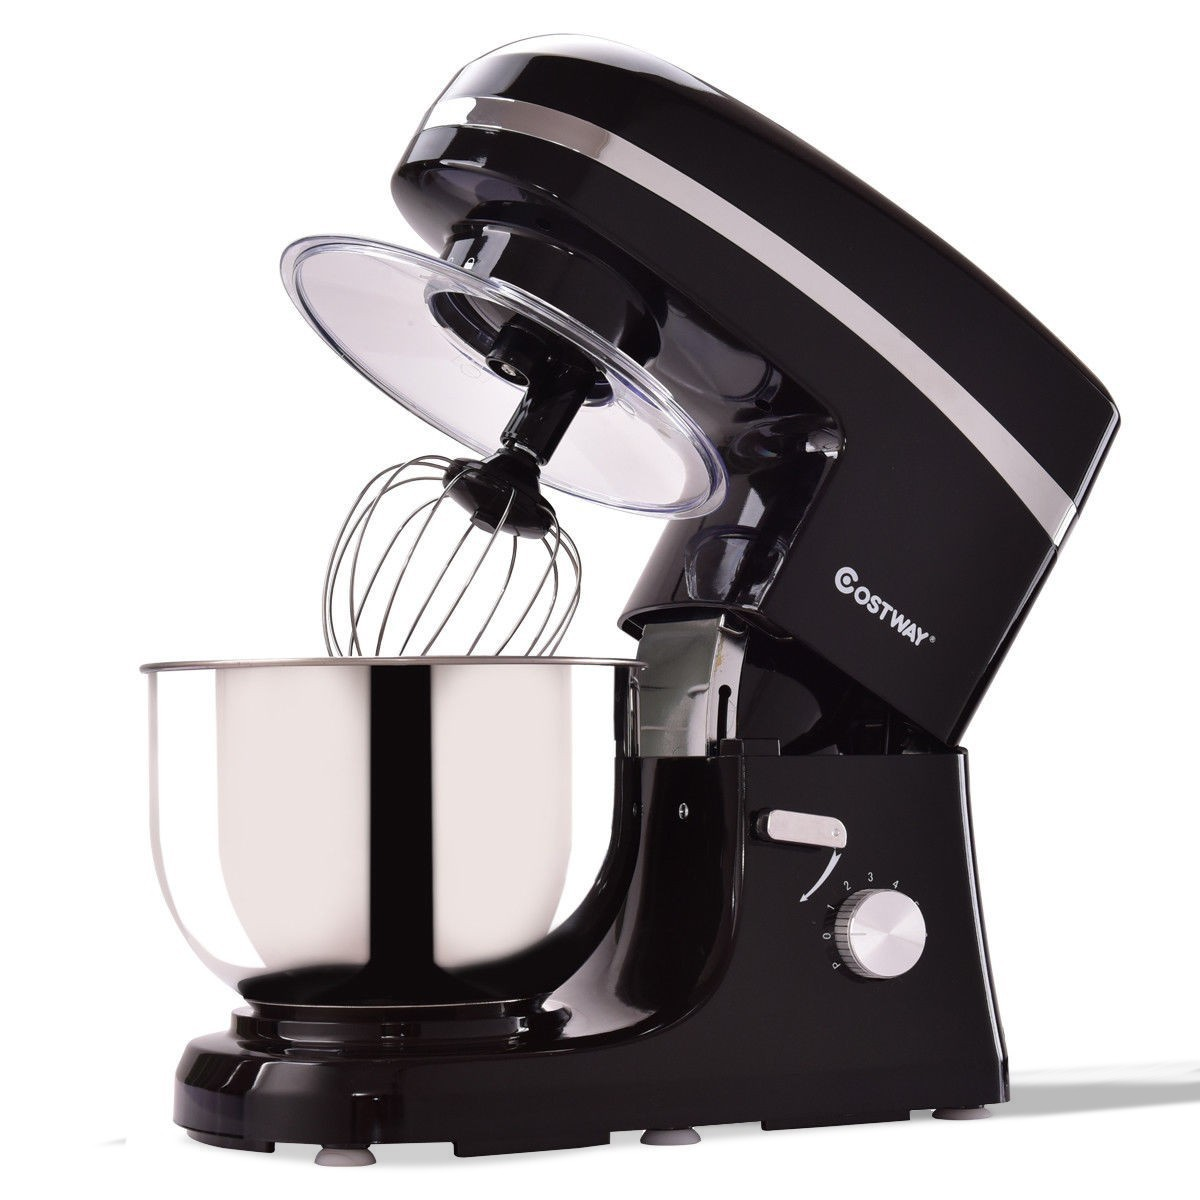 5.3 qt 800 W Electric Food Stand Mixer w/ Stainless Steel Bowl - White